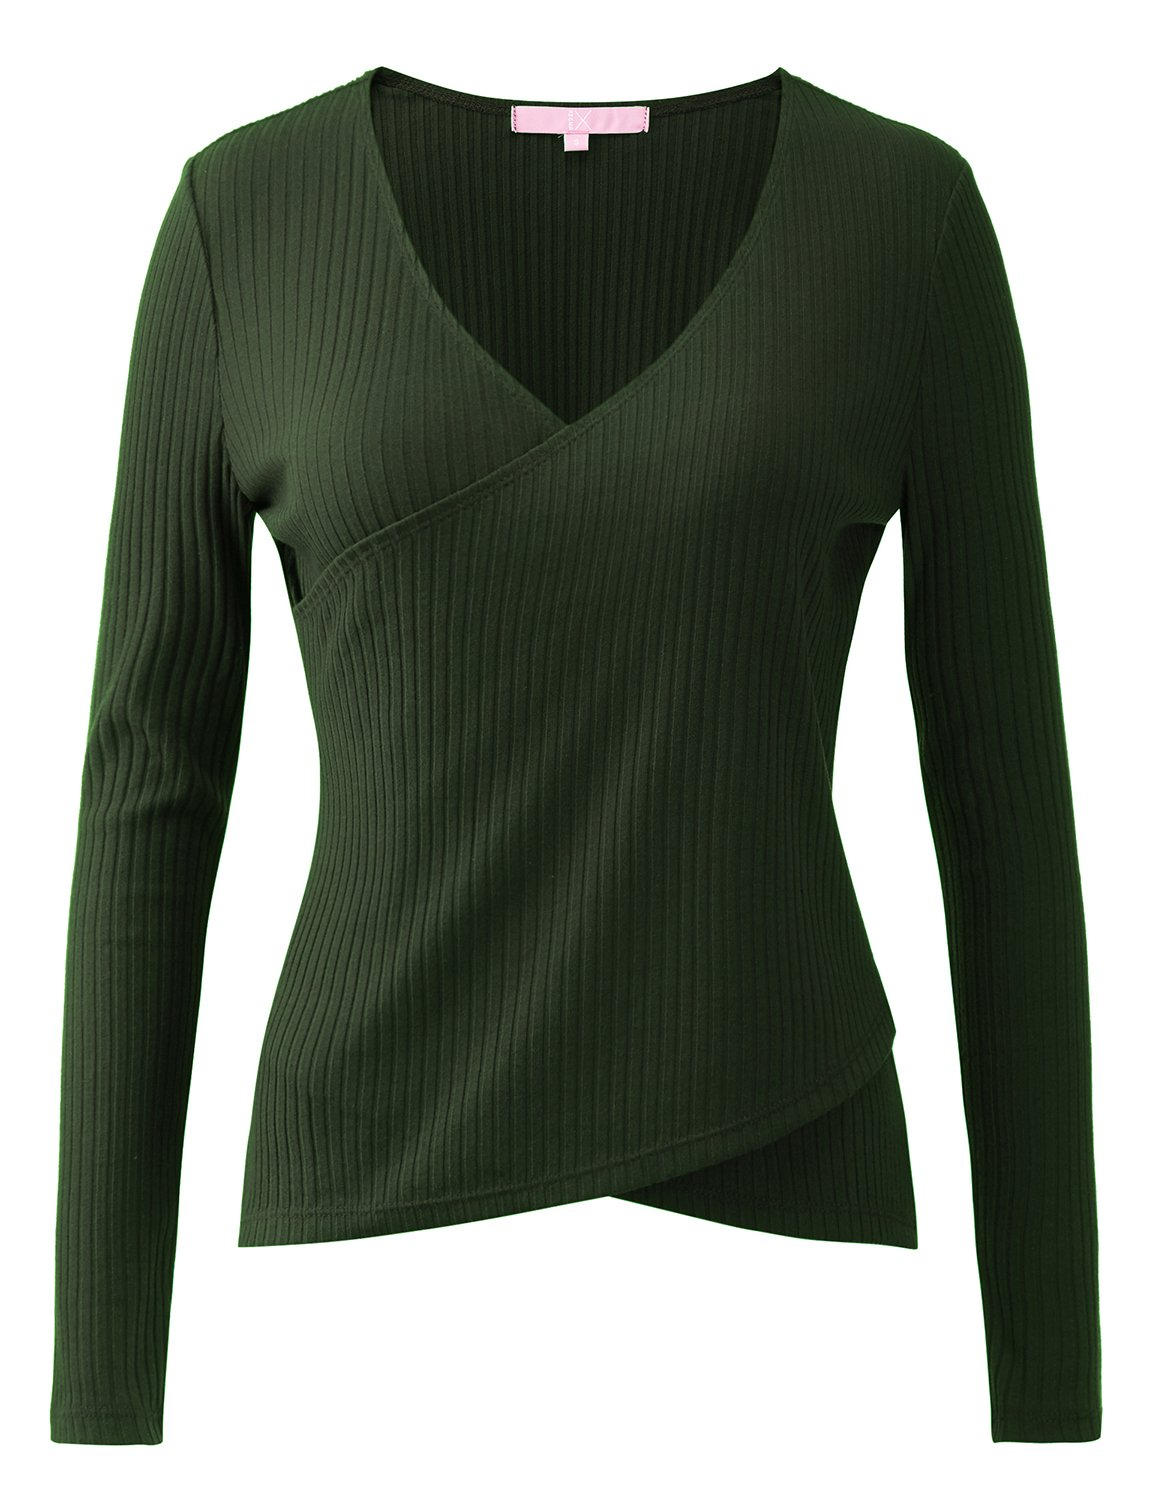 REGNA X Womens crew neck classic loose fit knit sweater top, 17703_green, X-Large